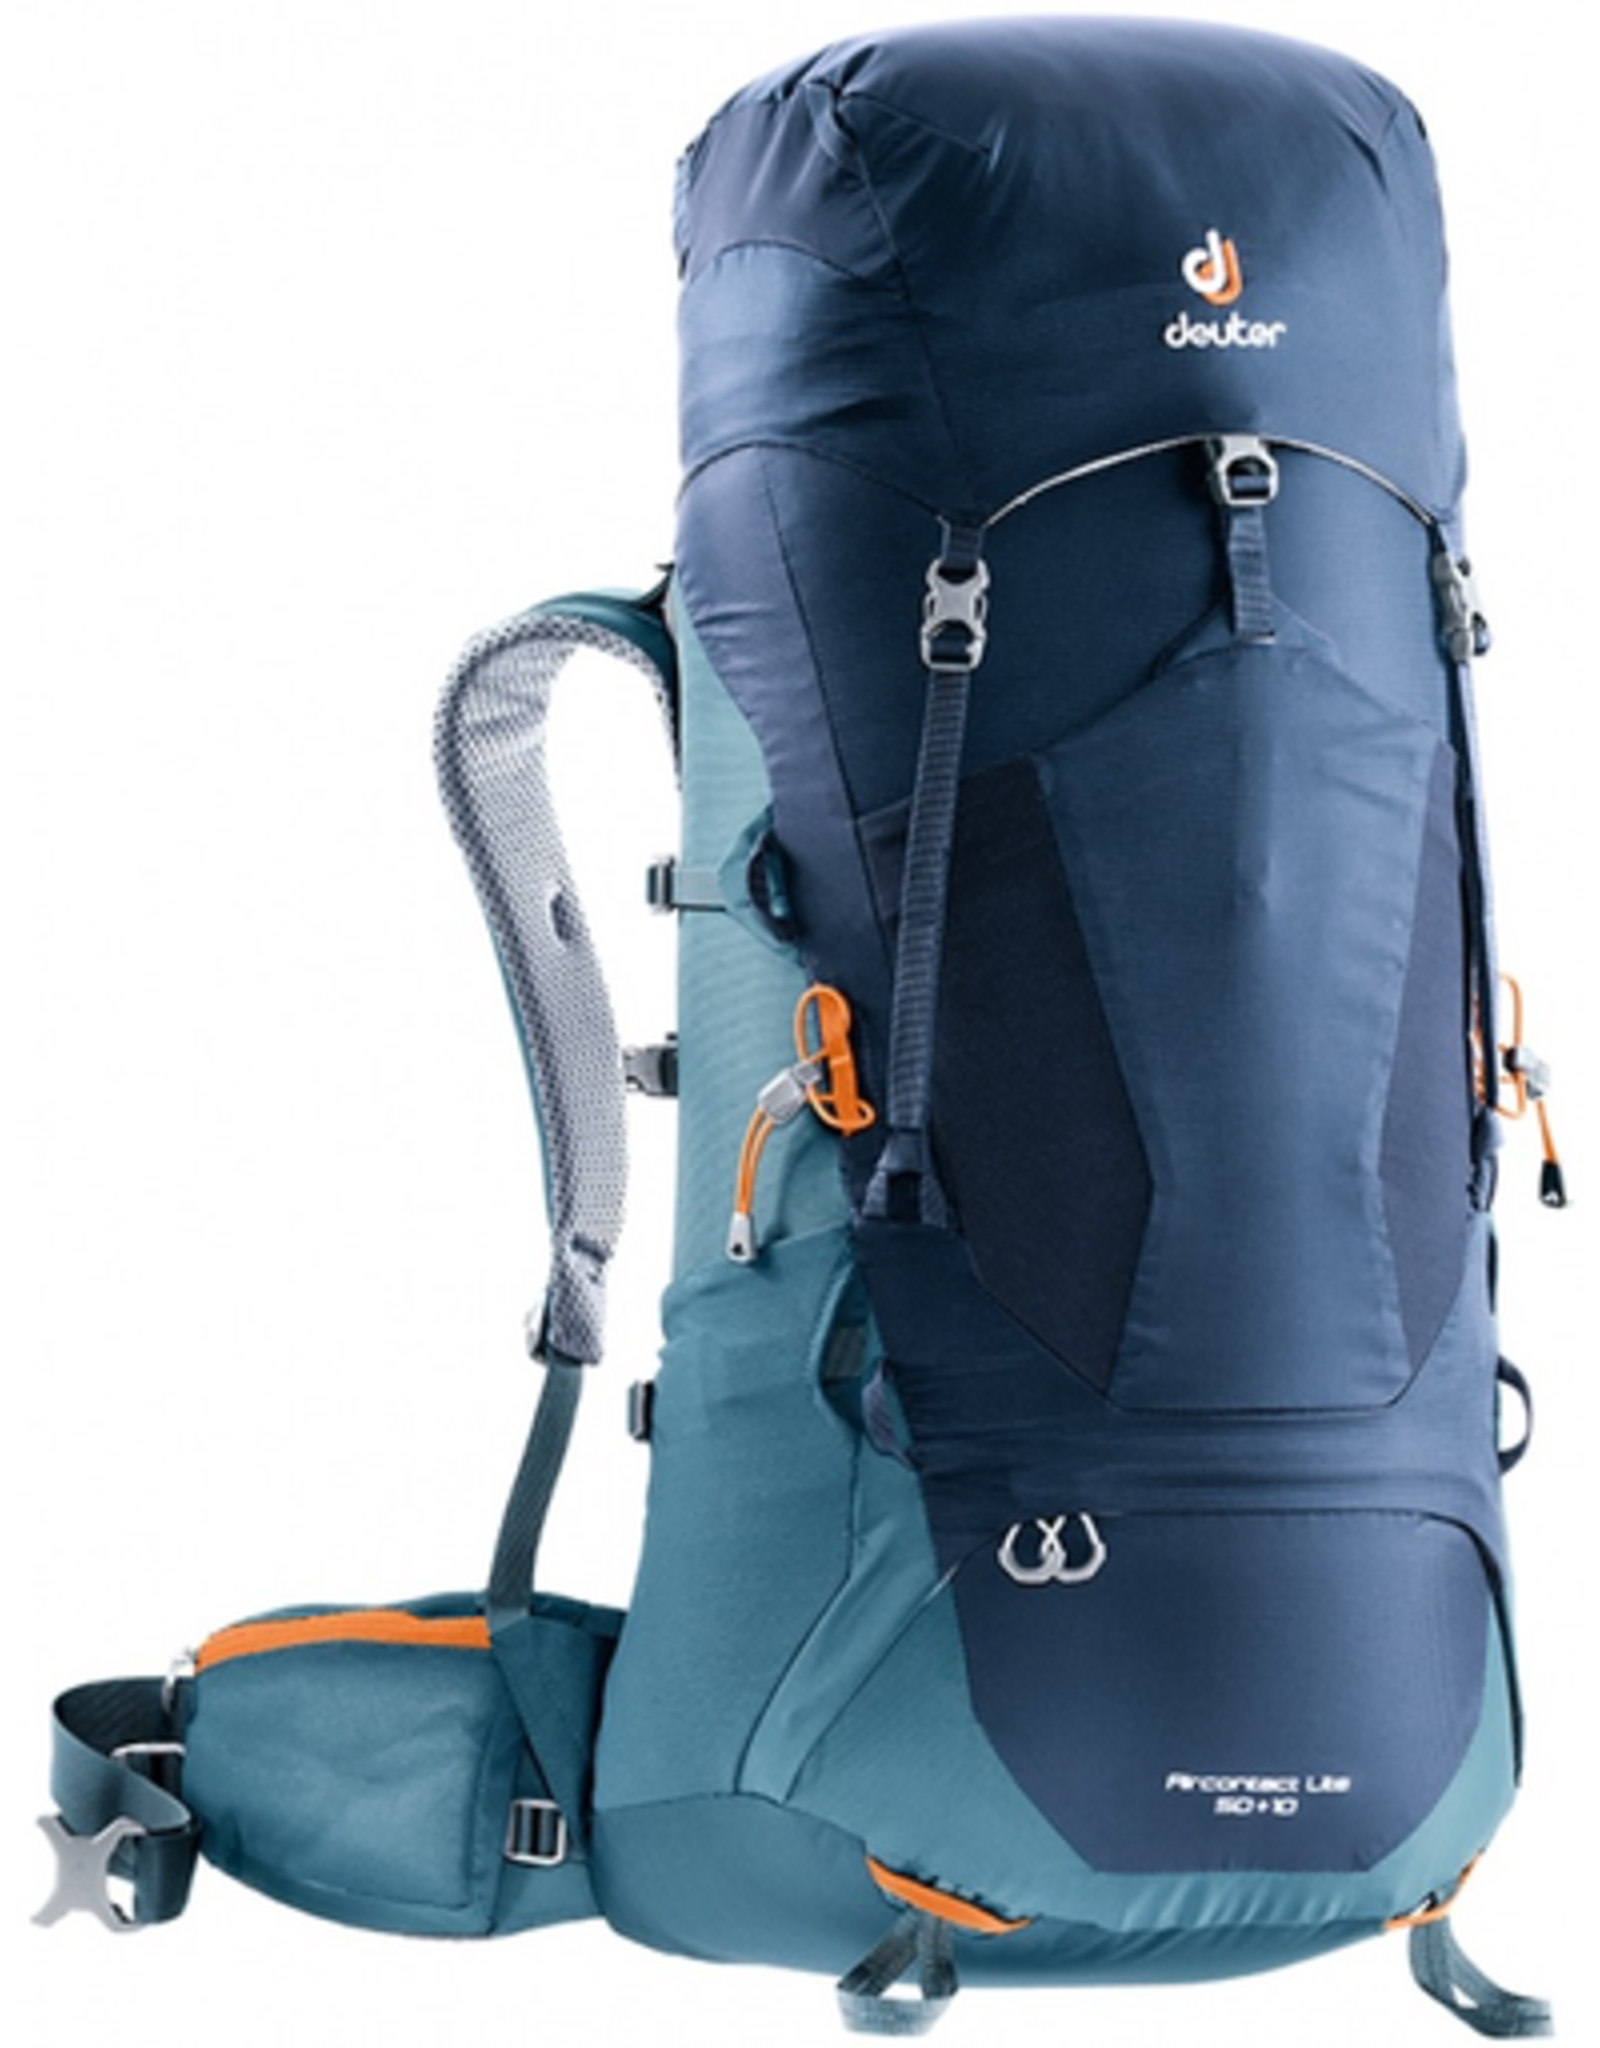 Deuter Deuter Aircontact Lite 50+10 Backpack, Navy-Arctic